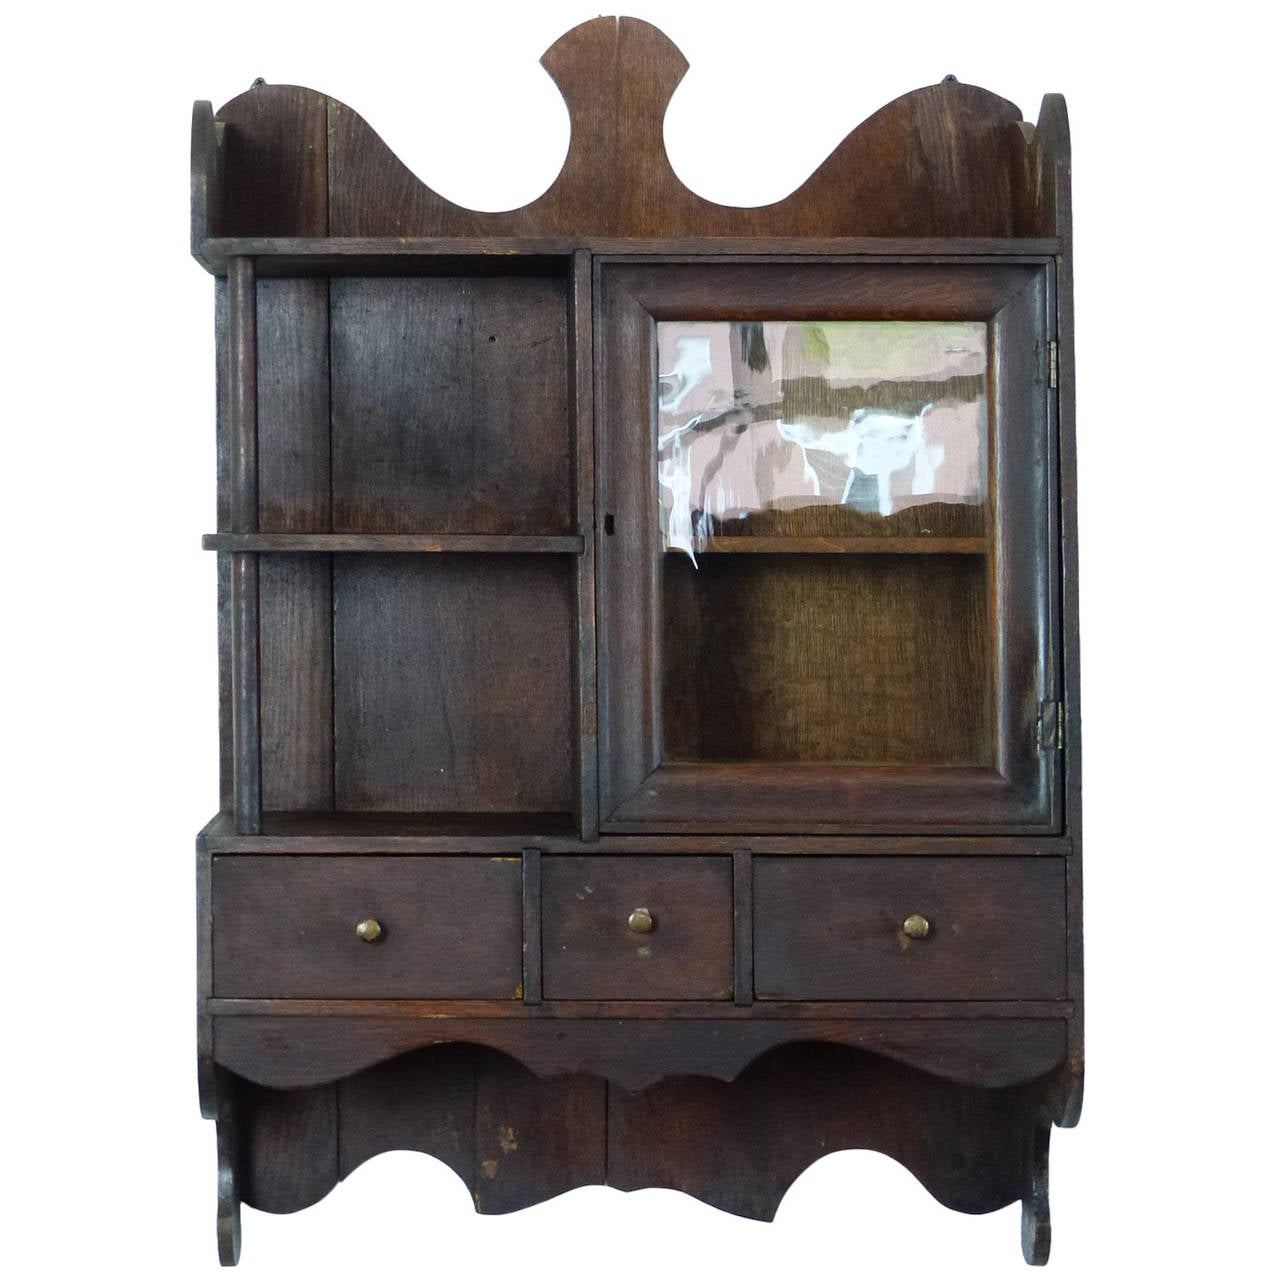 1920 Small Wall Hanging Apothecary Cabinet At 1stdibs